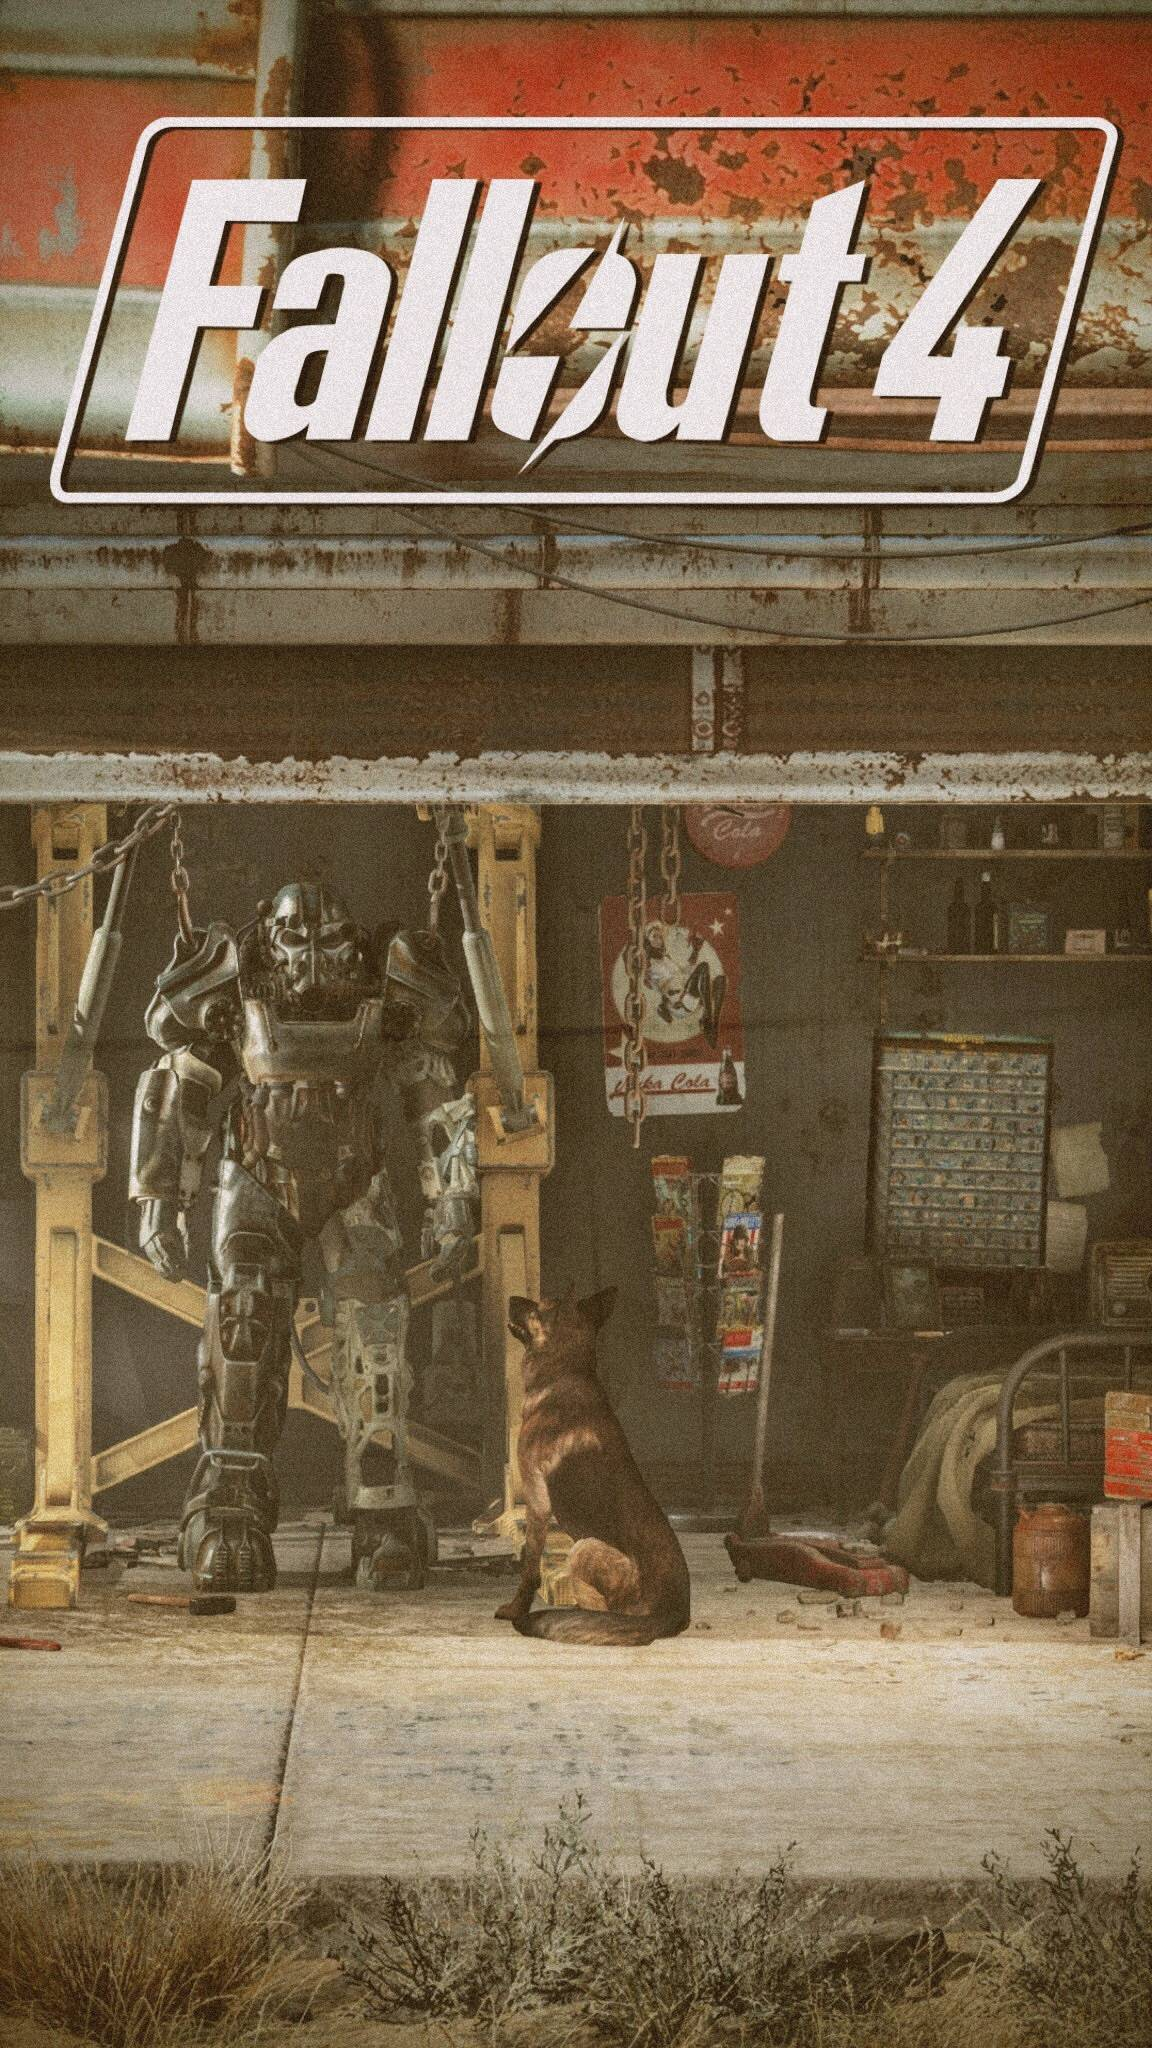 1152x2048 - Fallout iPhone 6 8